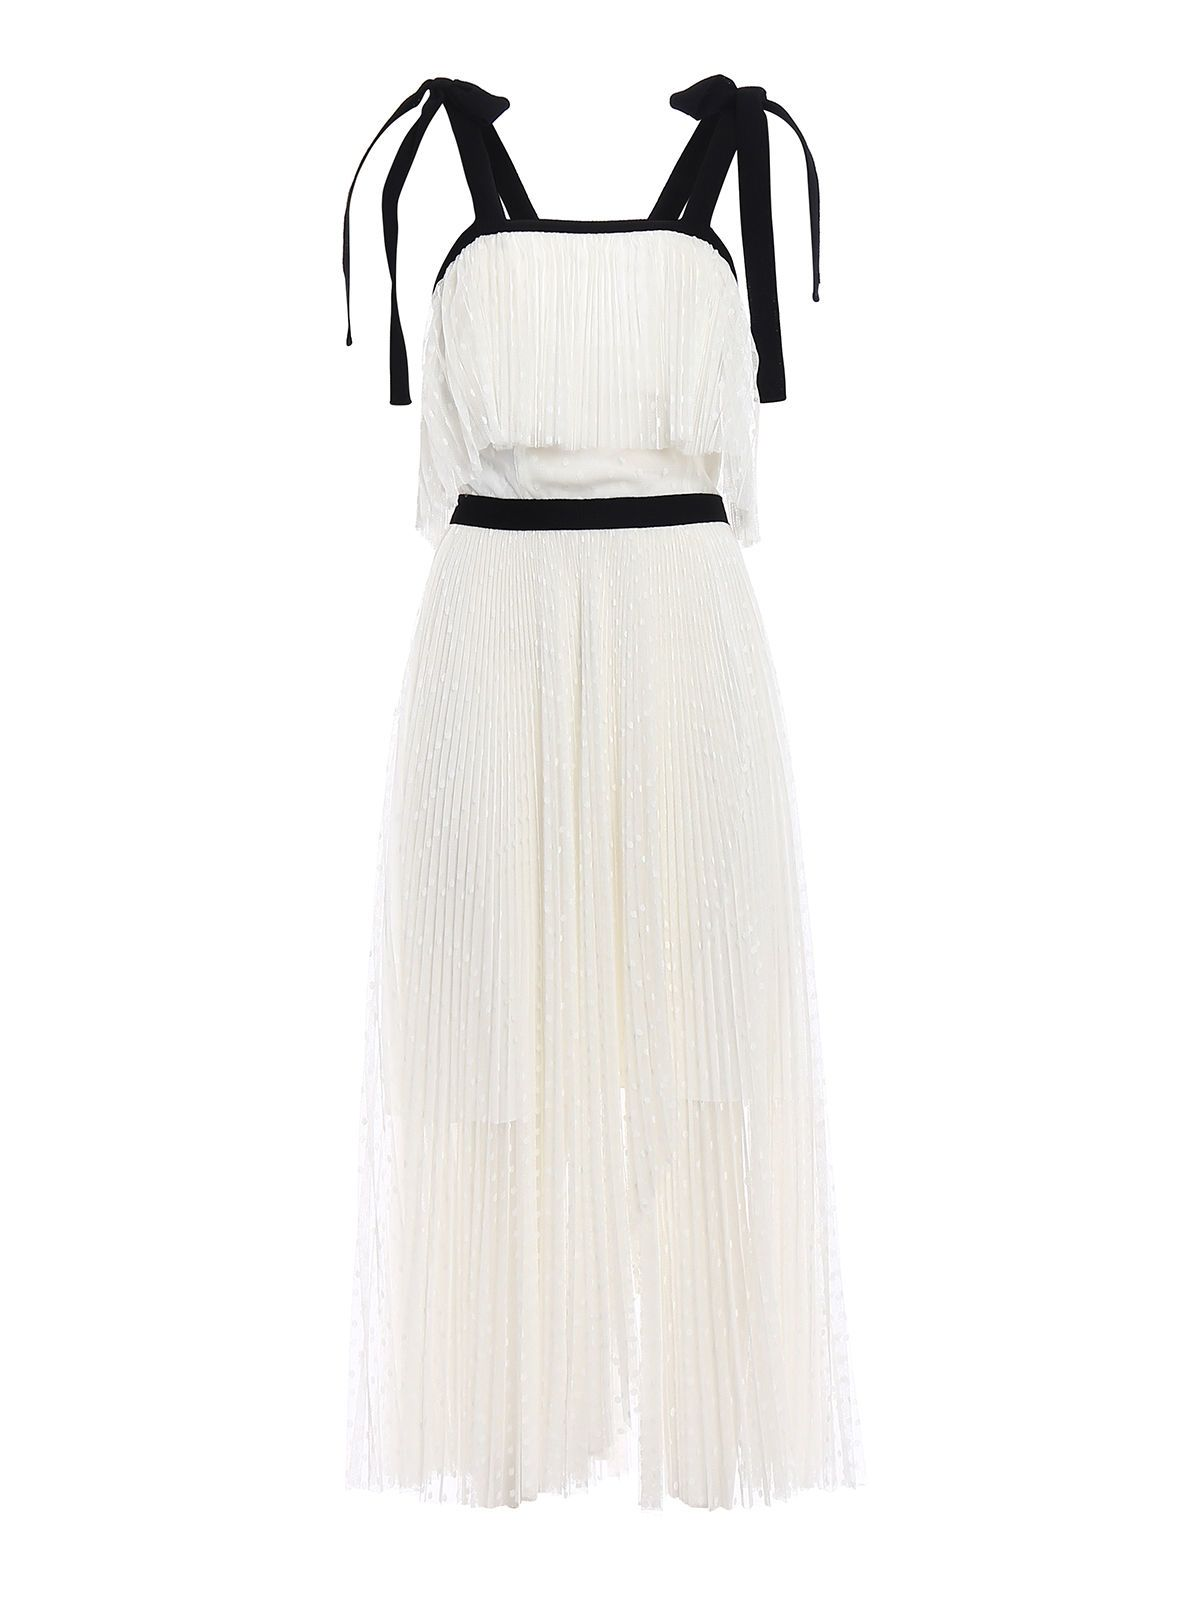 Dress for Women, Evening Cocktail Party On Sale, White, polyestere, 2017, 10 Philosophy di Lorenzo Serafini